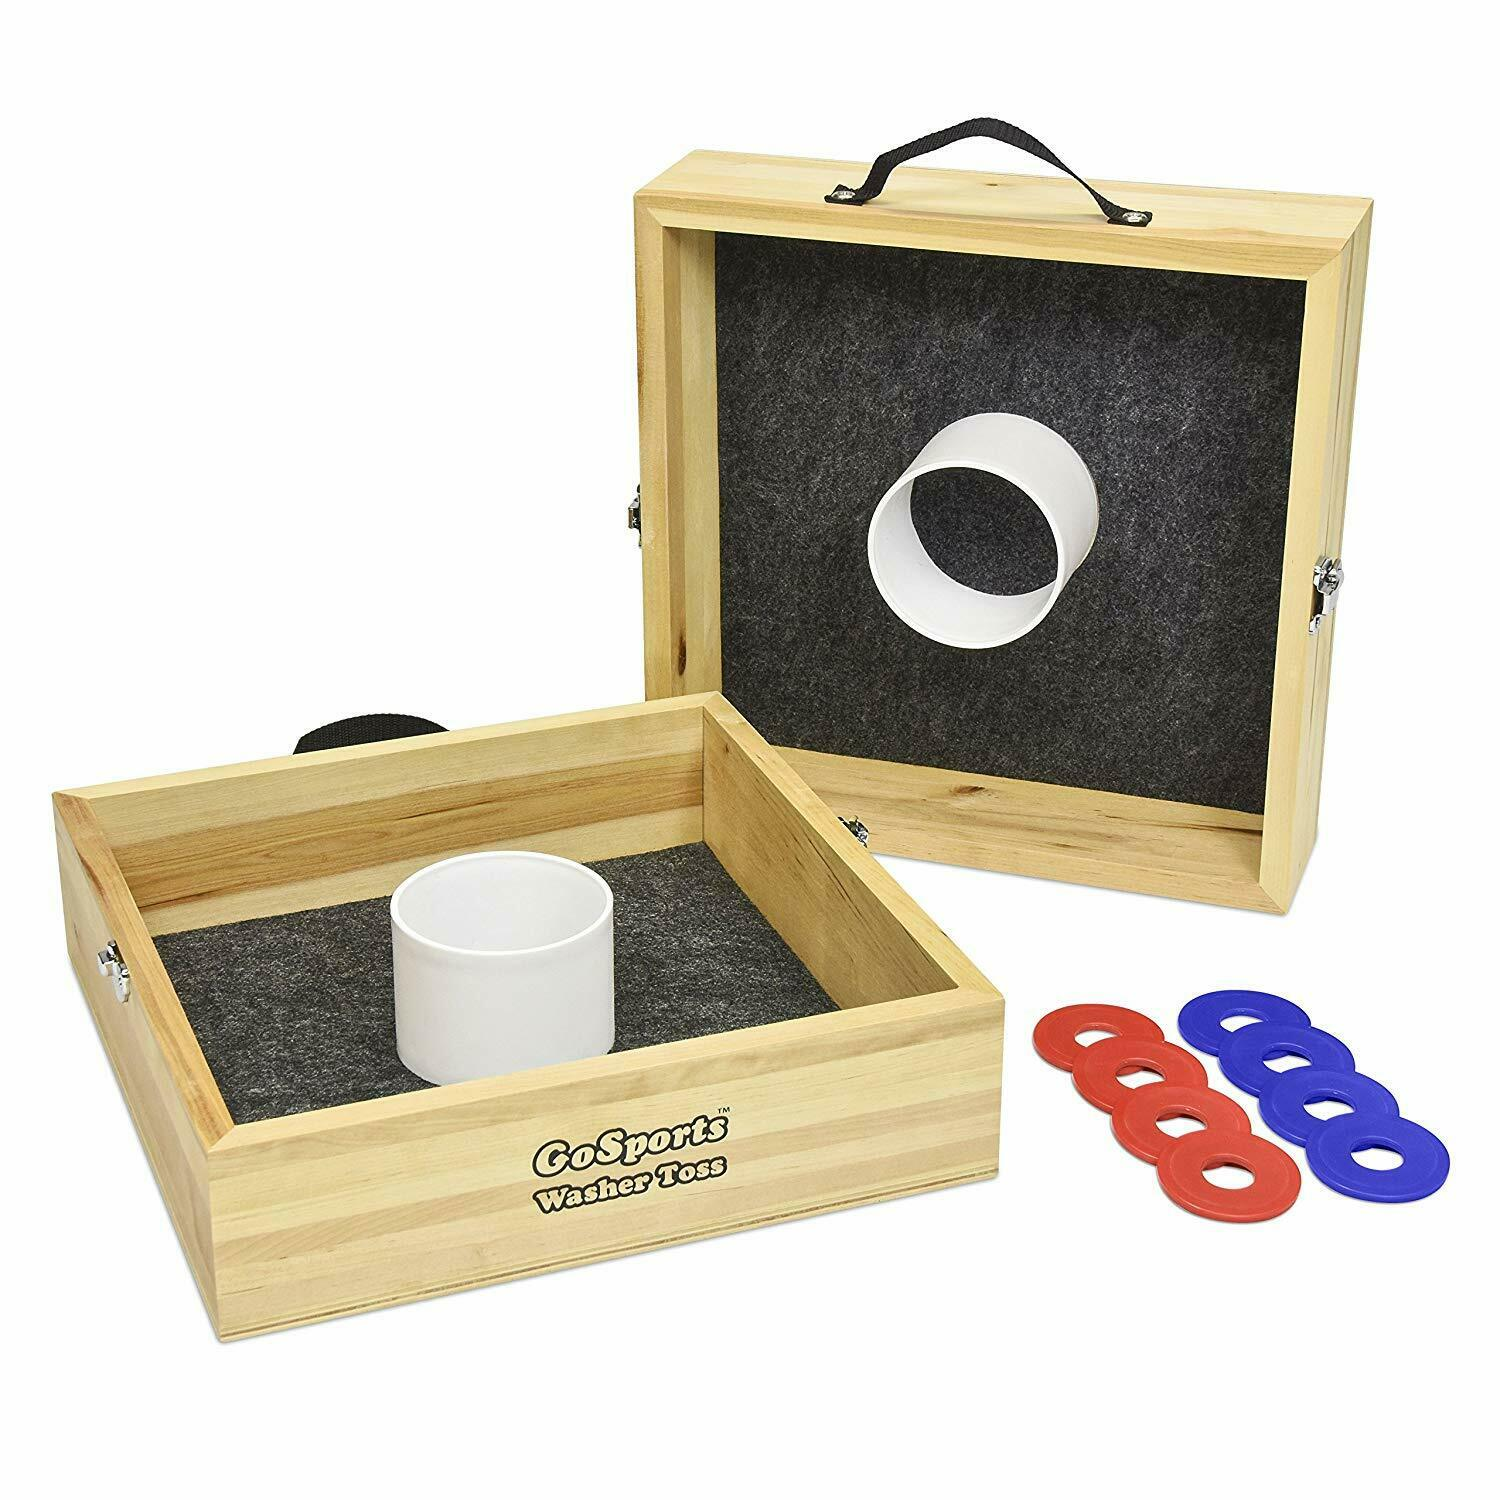 Premium Washer Toss Game Set Fun & Exciting Game For Everyone